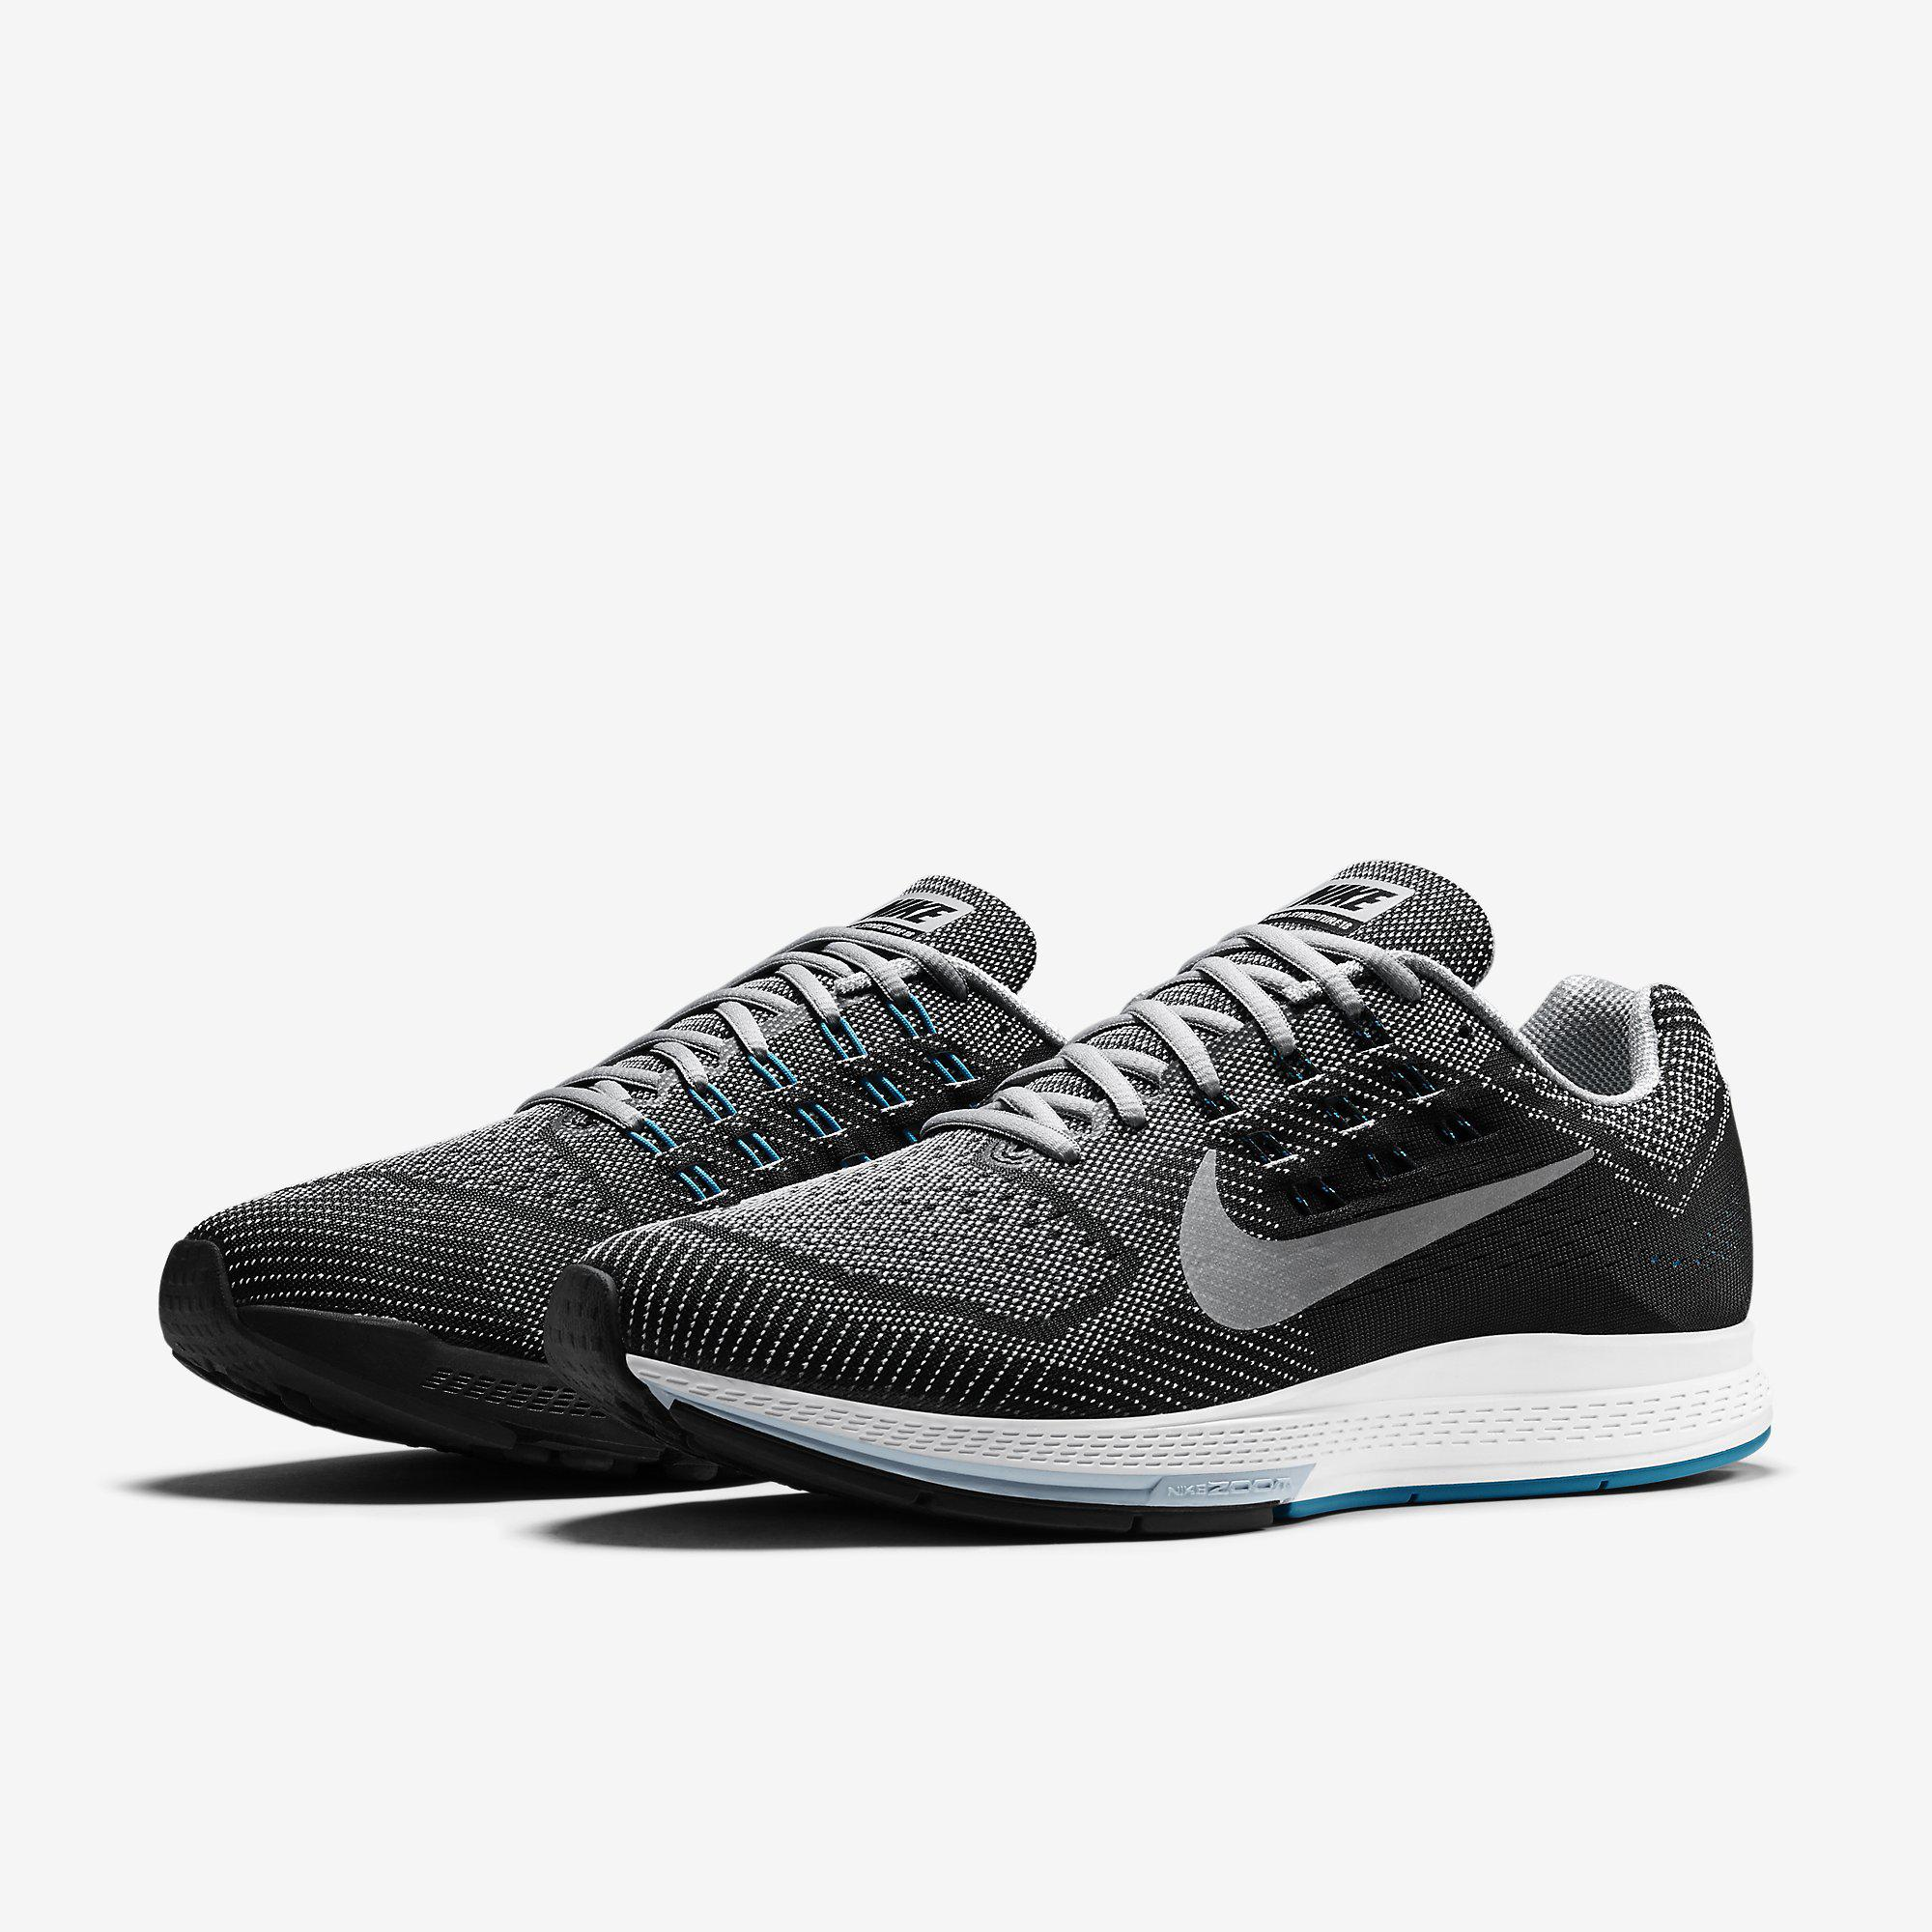 8f72818e2cee Nike Mens Air Zoom Structure 18 Running Shoes - Wolf Grey Black ...